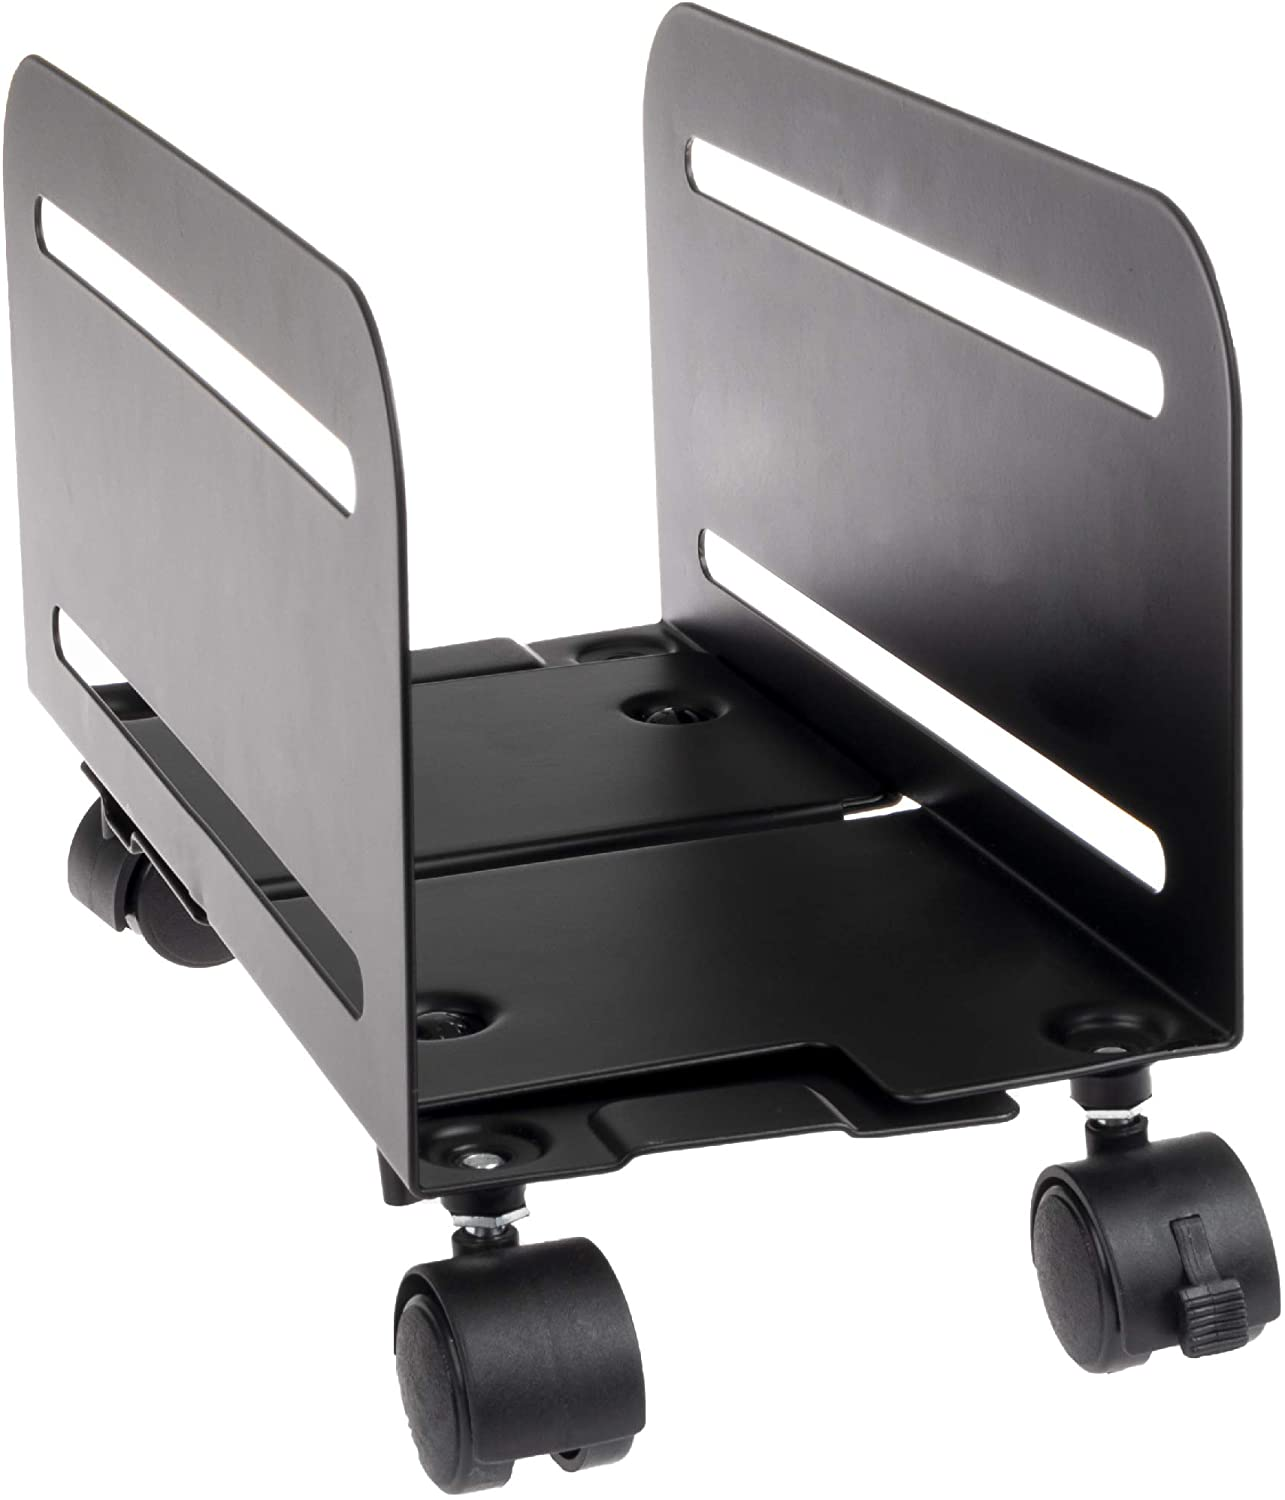 PC Computer Tower Stand with Wheels - Mobile CPU Holder Cart for Desktop : Office Products